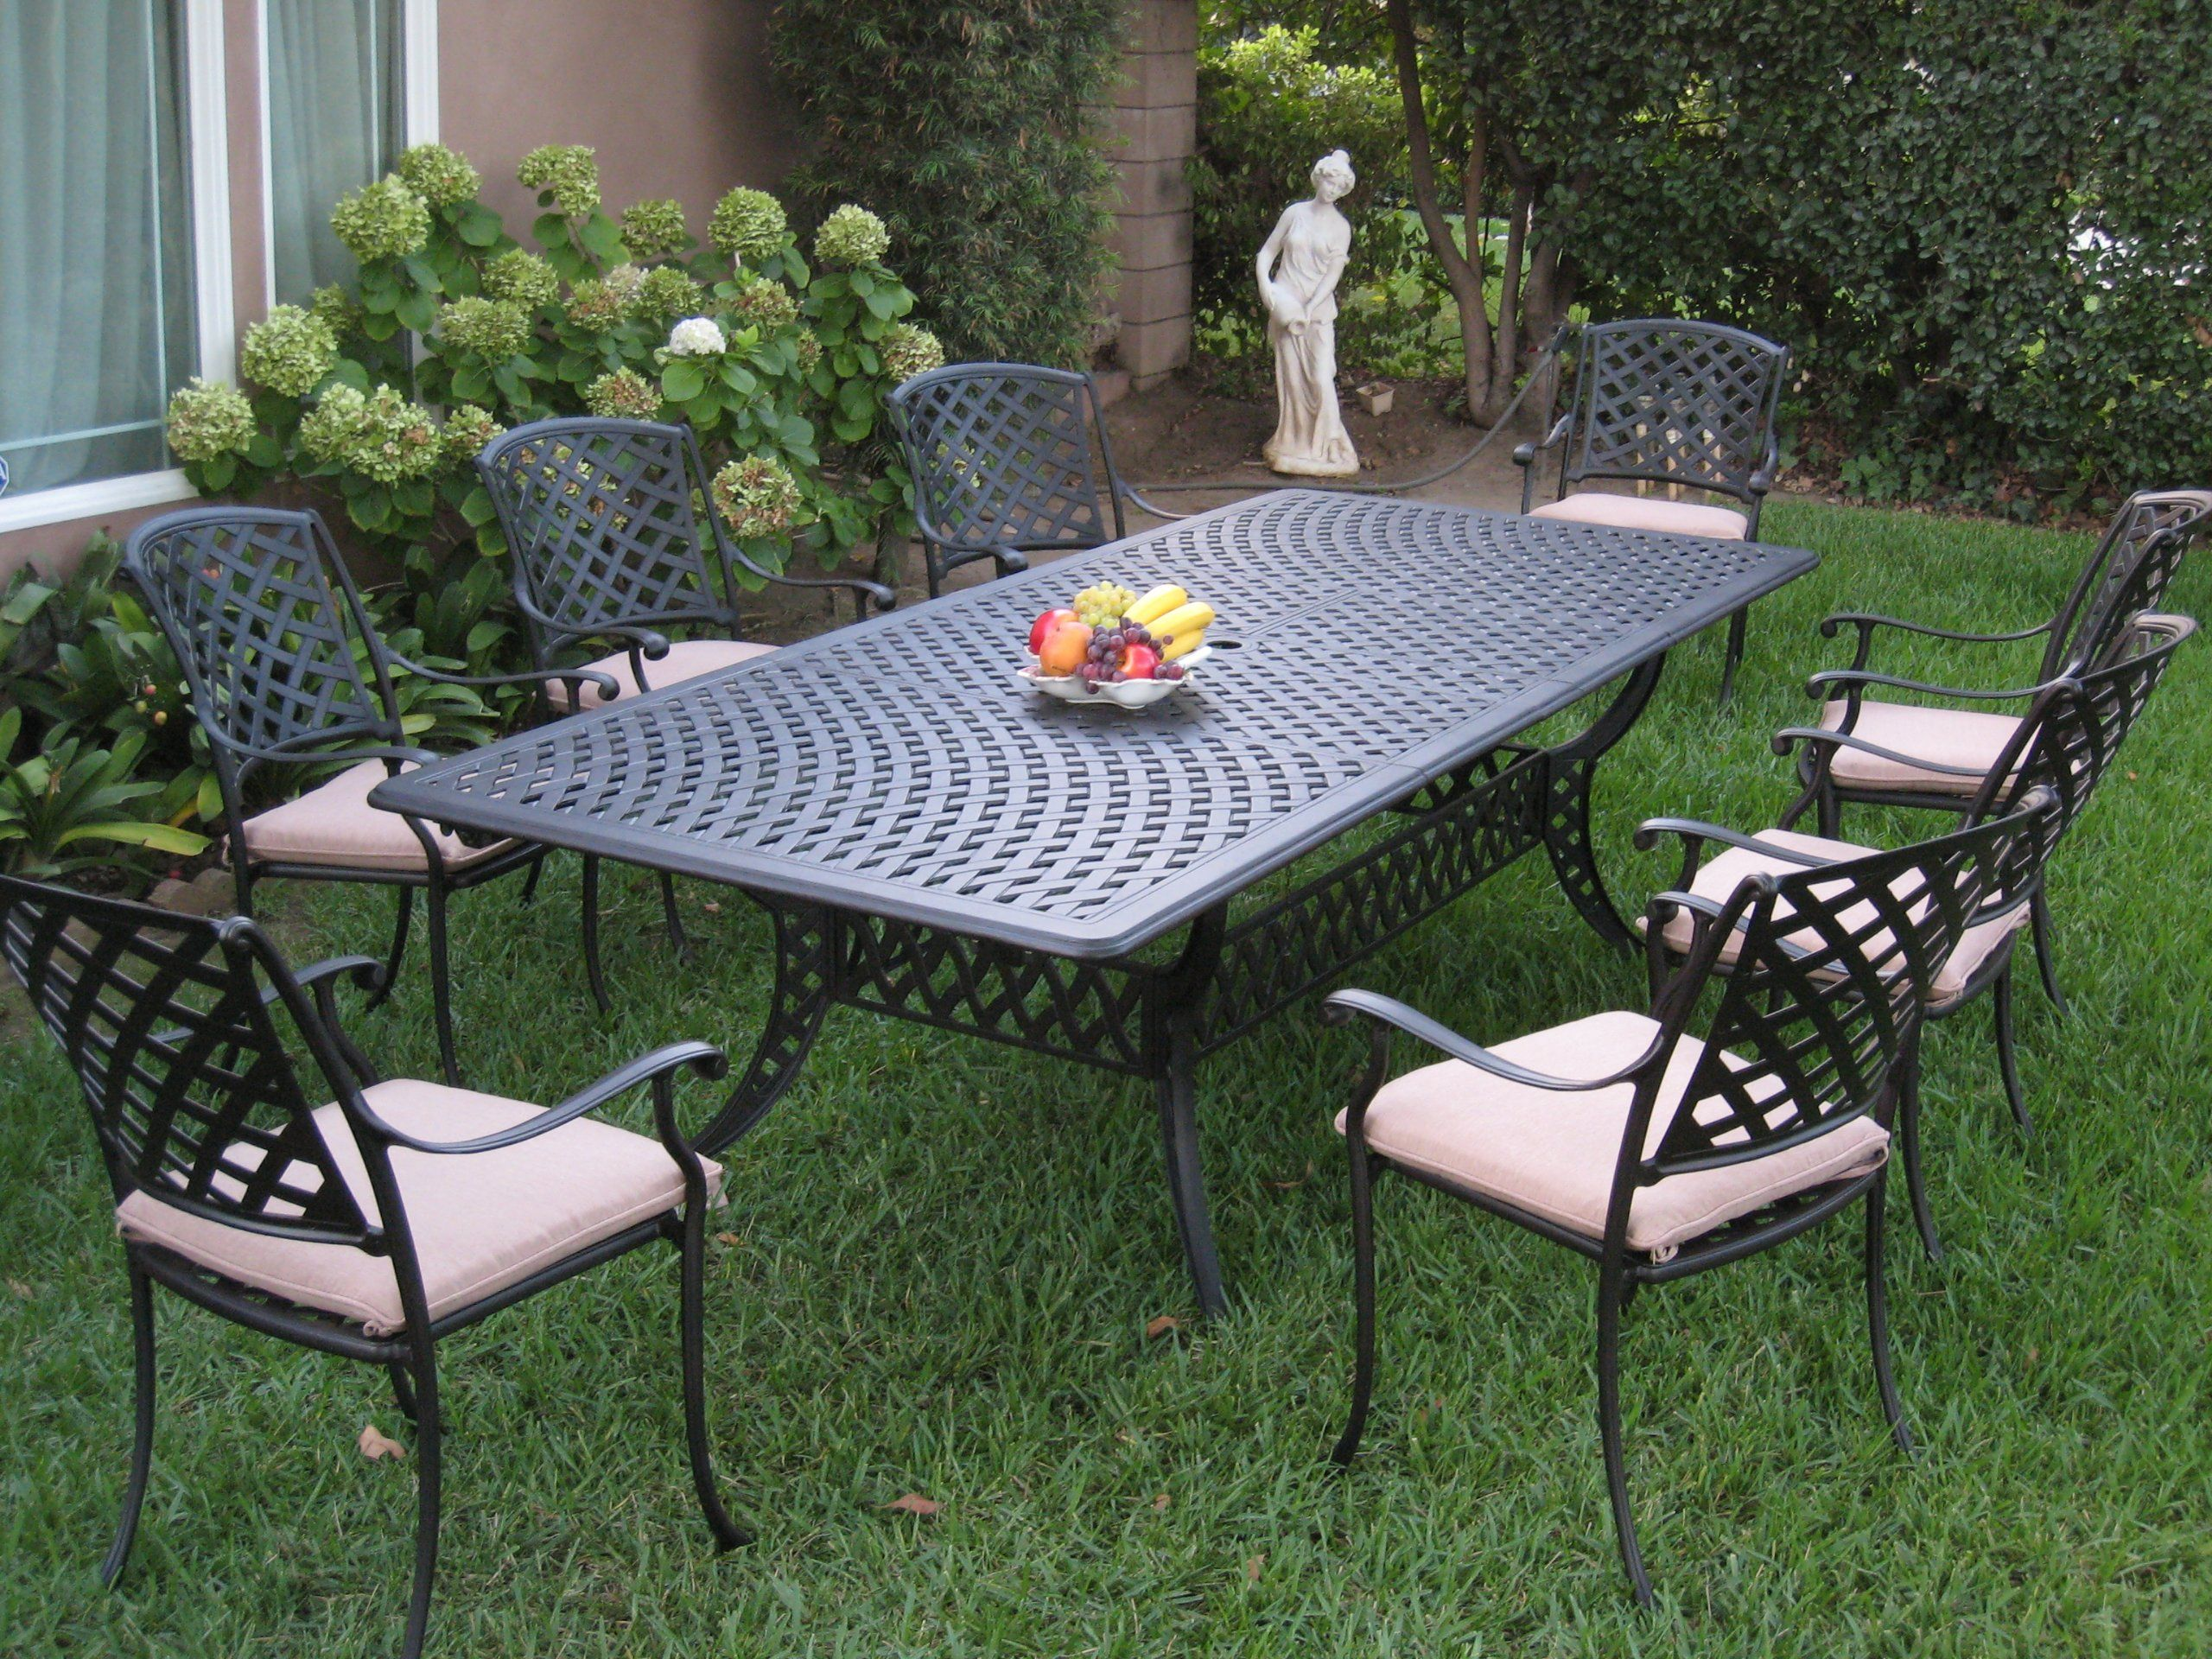 wicker nice when do you chaise to furniture can want sofa and lounge your a with interior blue resin home tired created enjoy sectionals stressed or caring architect by outdoor for soothing the go patio room youre relaxing ideas design so out sets professionals clearance chief